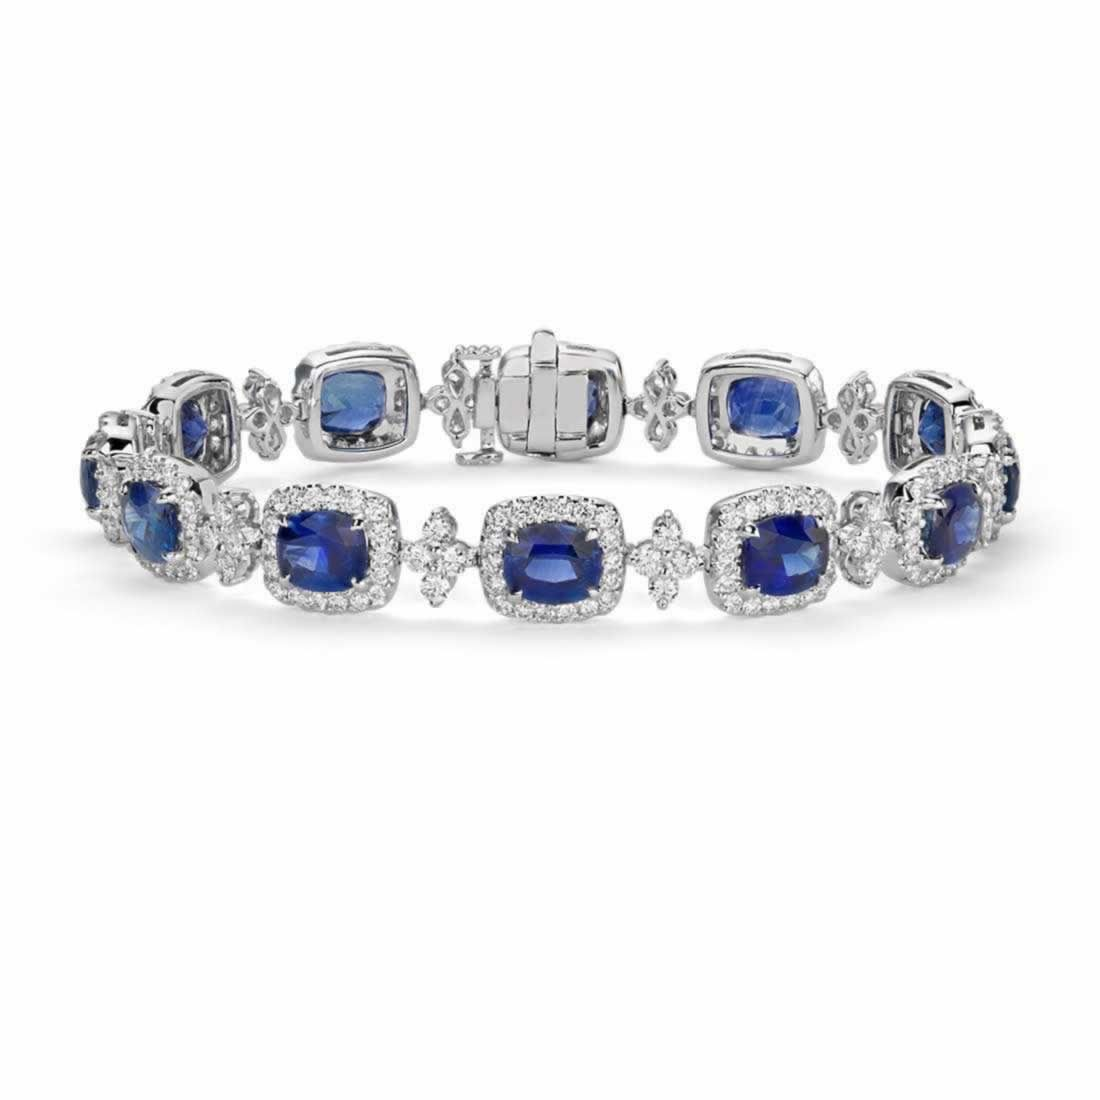 Cushion blue sapphire and halo diamond bracelet in k white gold